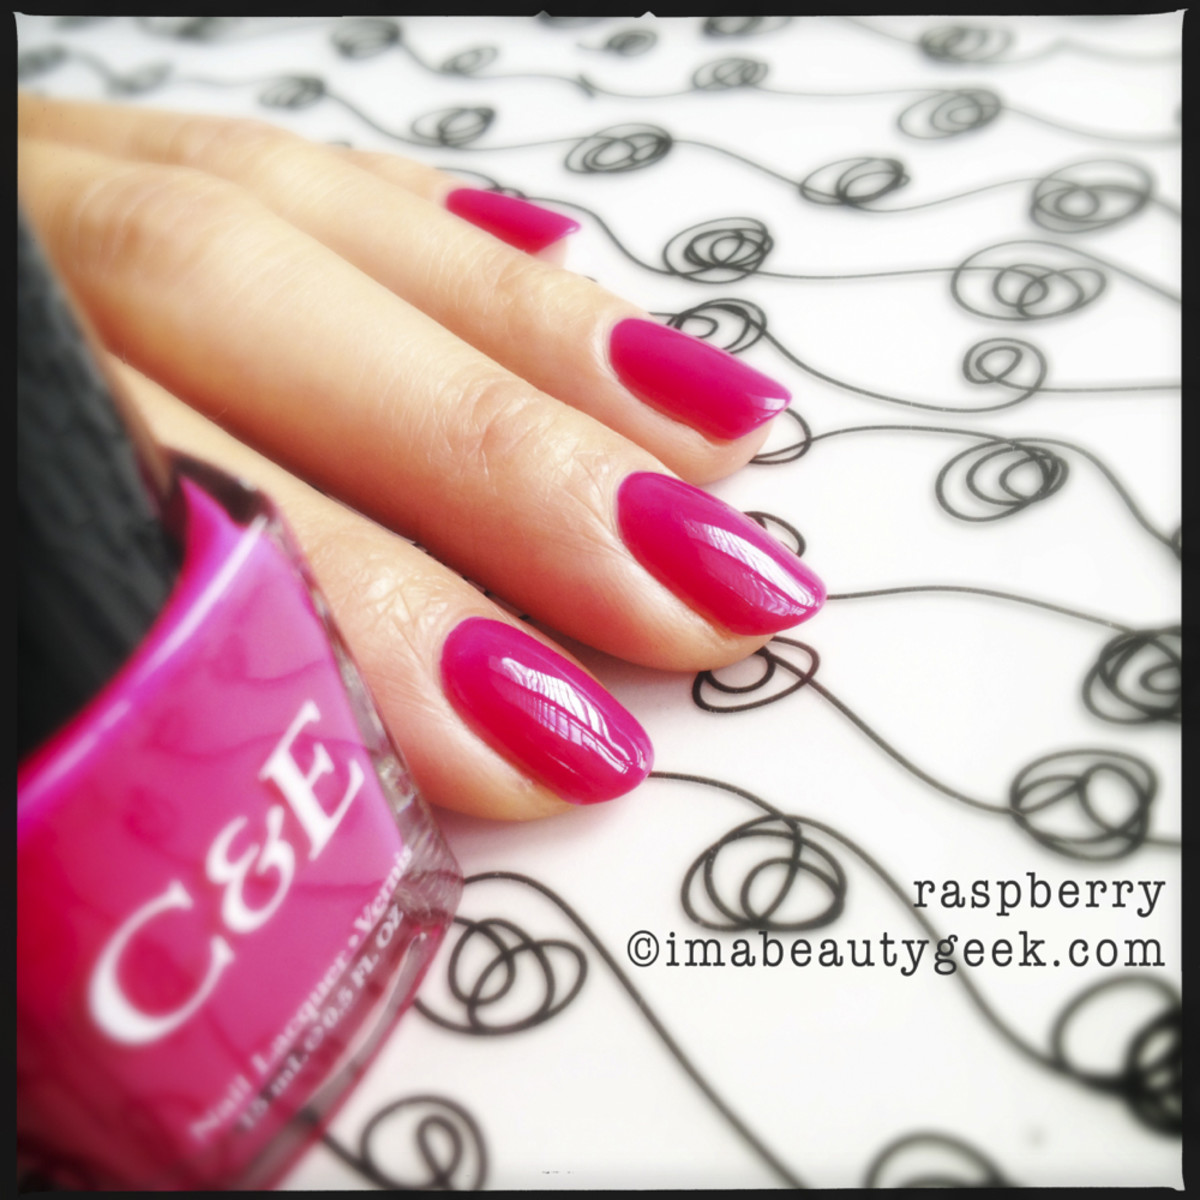 Crabtree & Evelyn Polish Raspberry